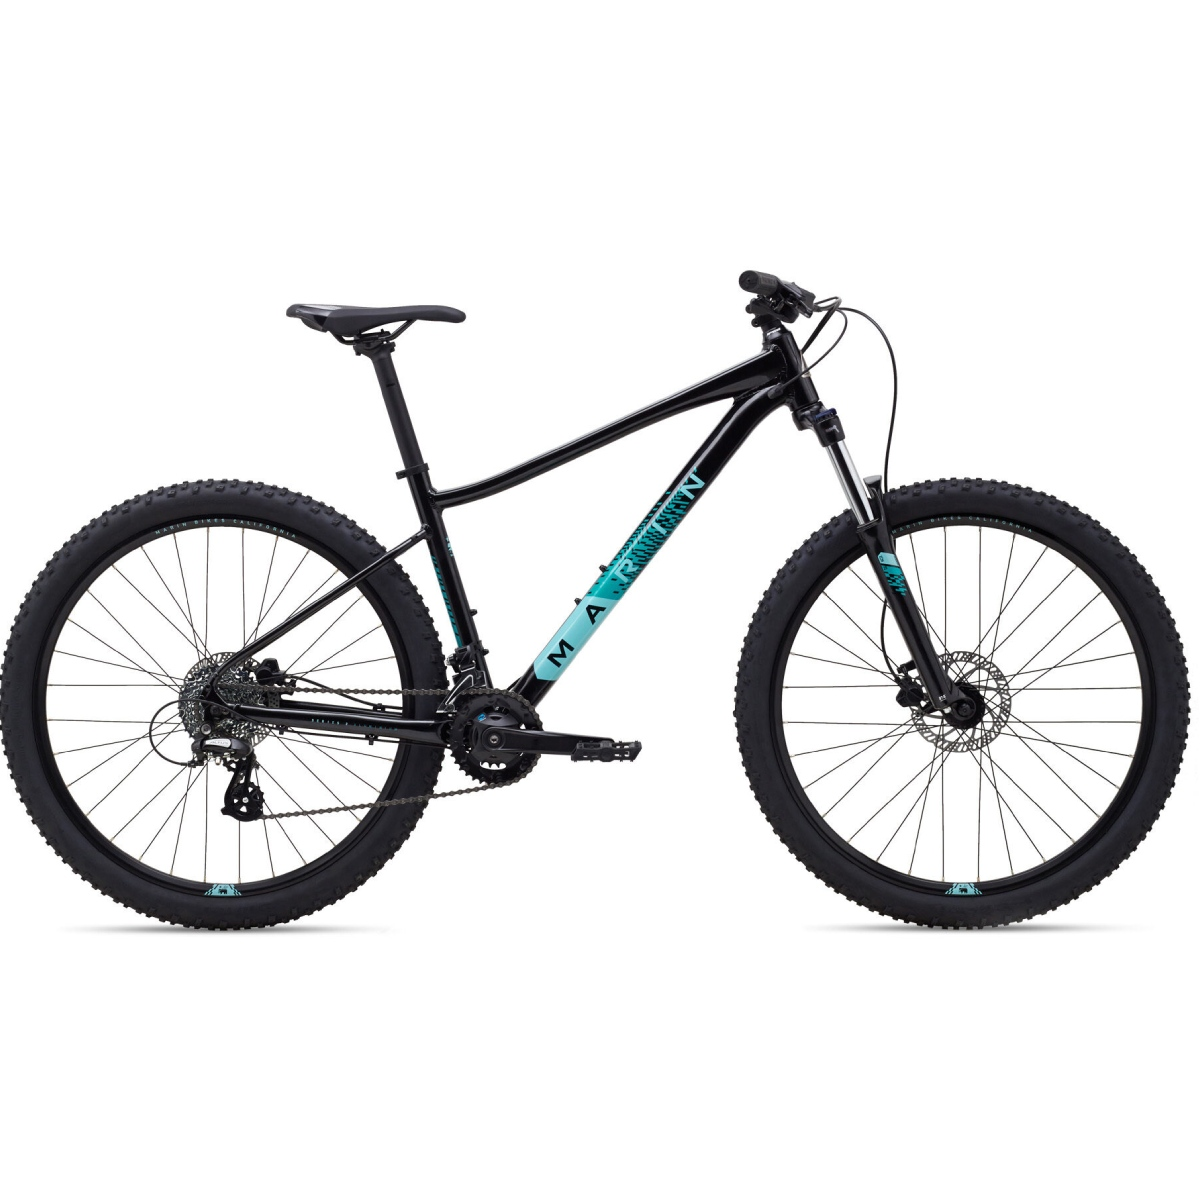 MARIN WILDCAT TRAIL 3 NOIR/TURQUOISE SMALL